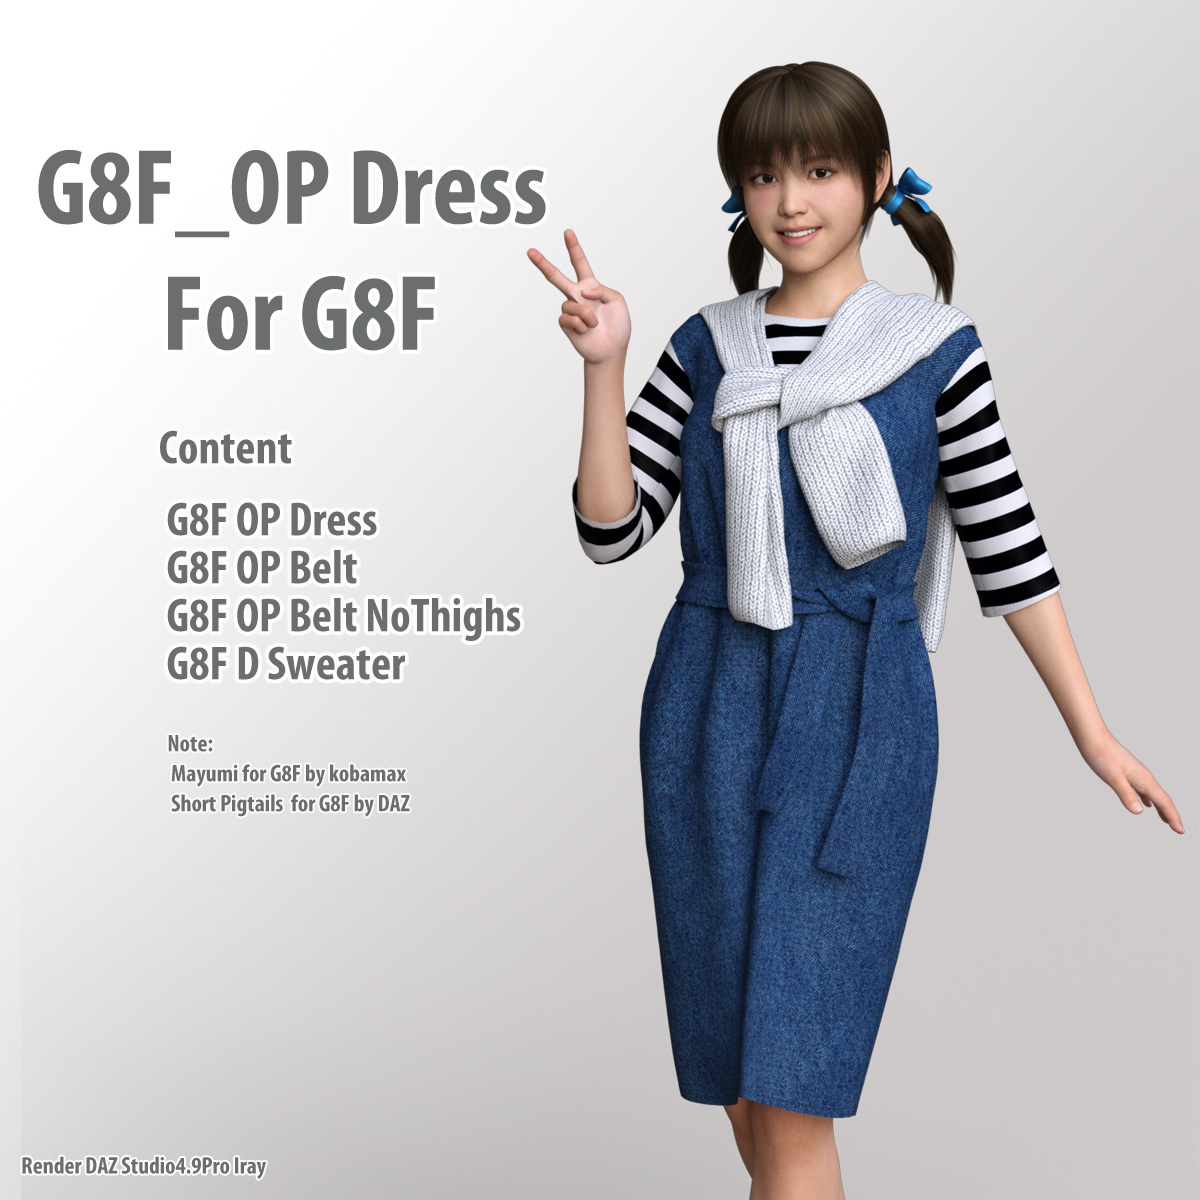 G8F_OPDress for G8F